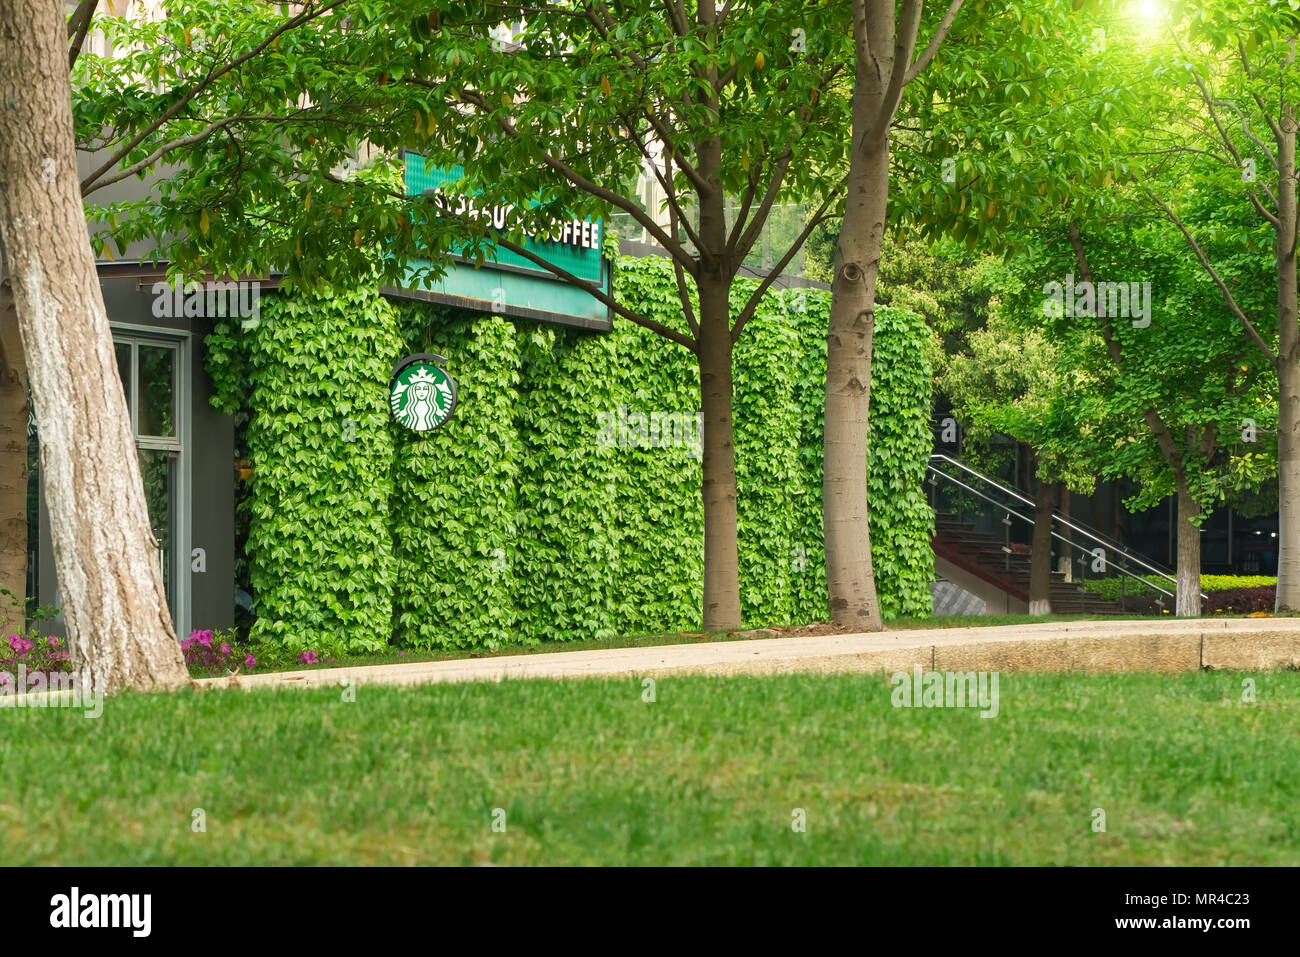 SHANGHAI, CHINA - APR 2018: Starbucks coffee shop in the green leaf wall, largest coffeehouse company in the world, coffee in the garden concept - Stock Image